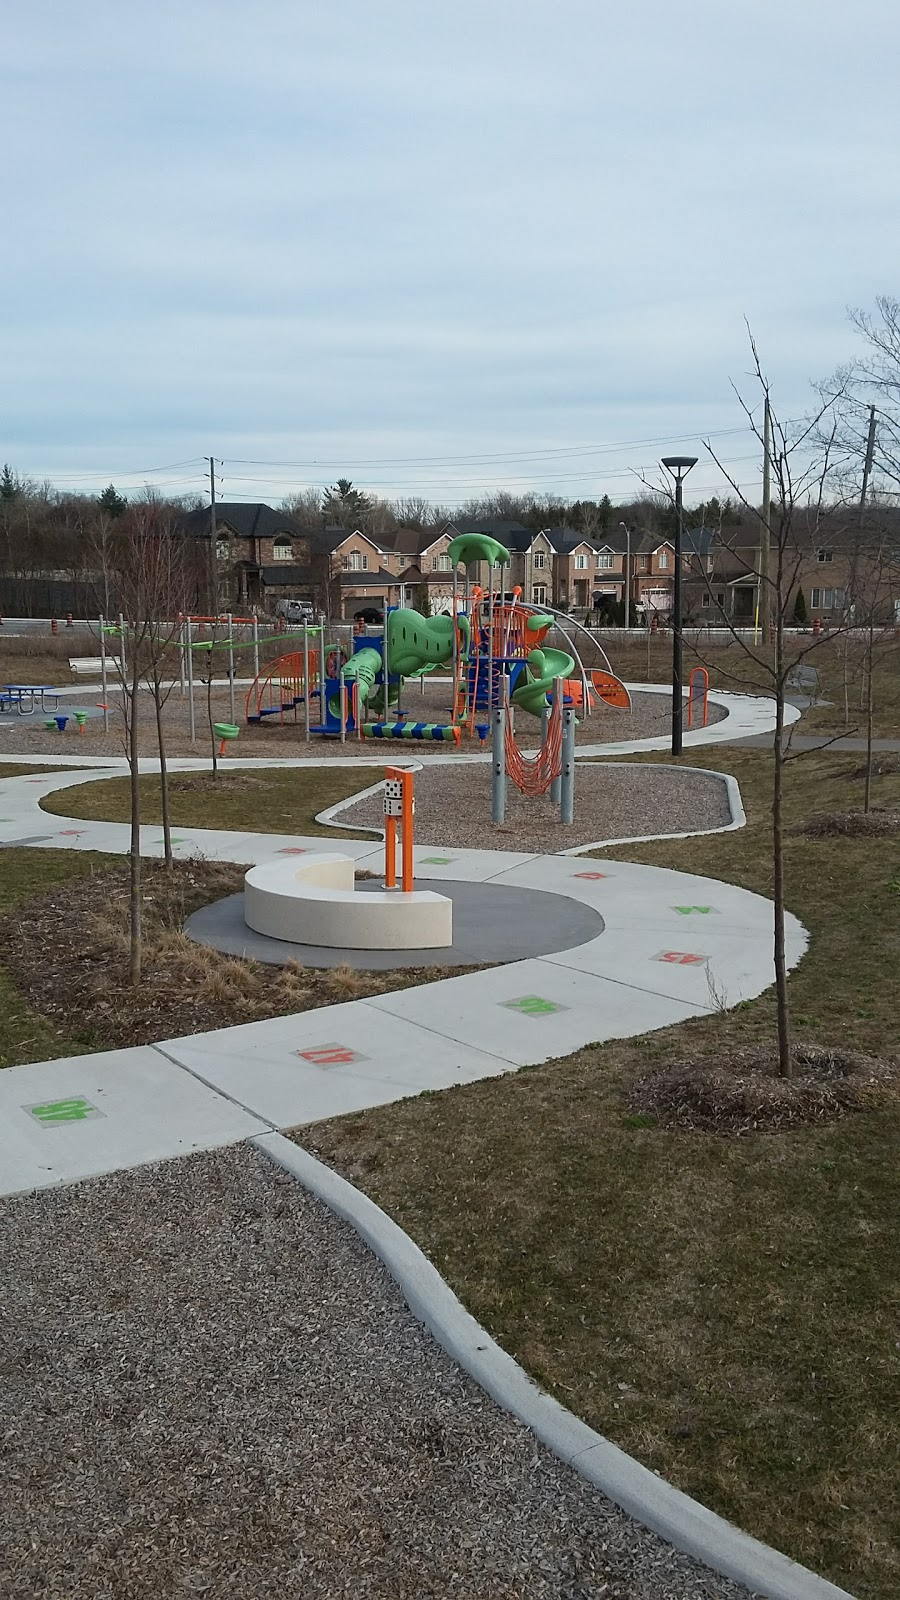 Snakes and Ladders Park   park   Mancini Cres, Richmond Hill, ON L4E 3P7, Canada